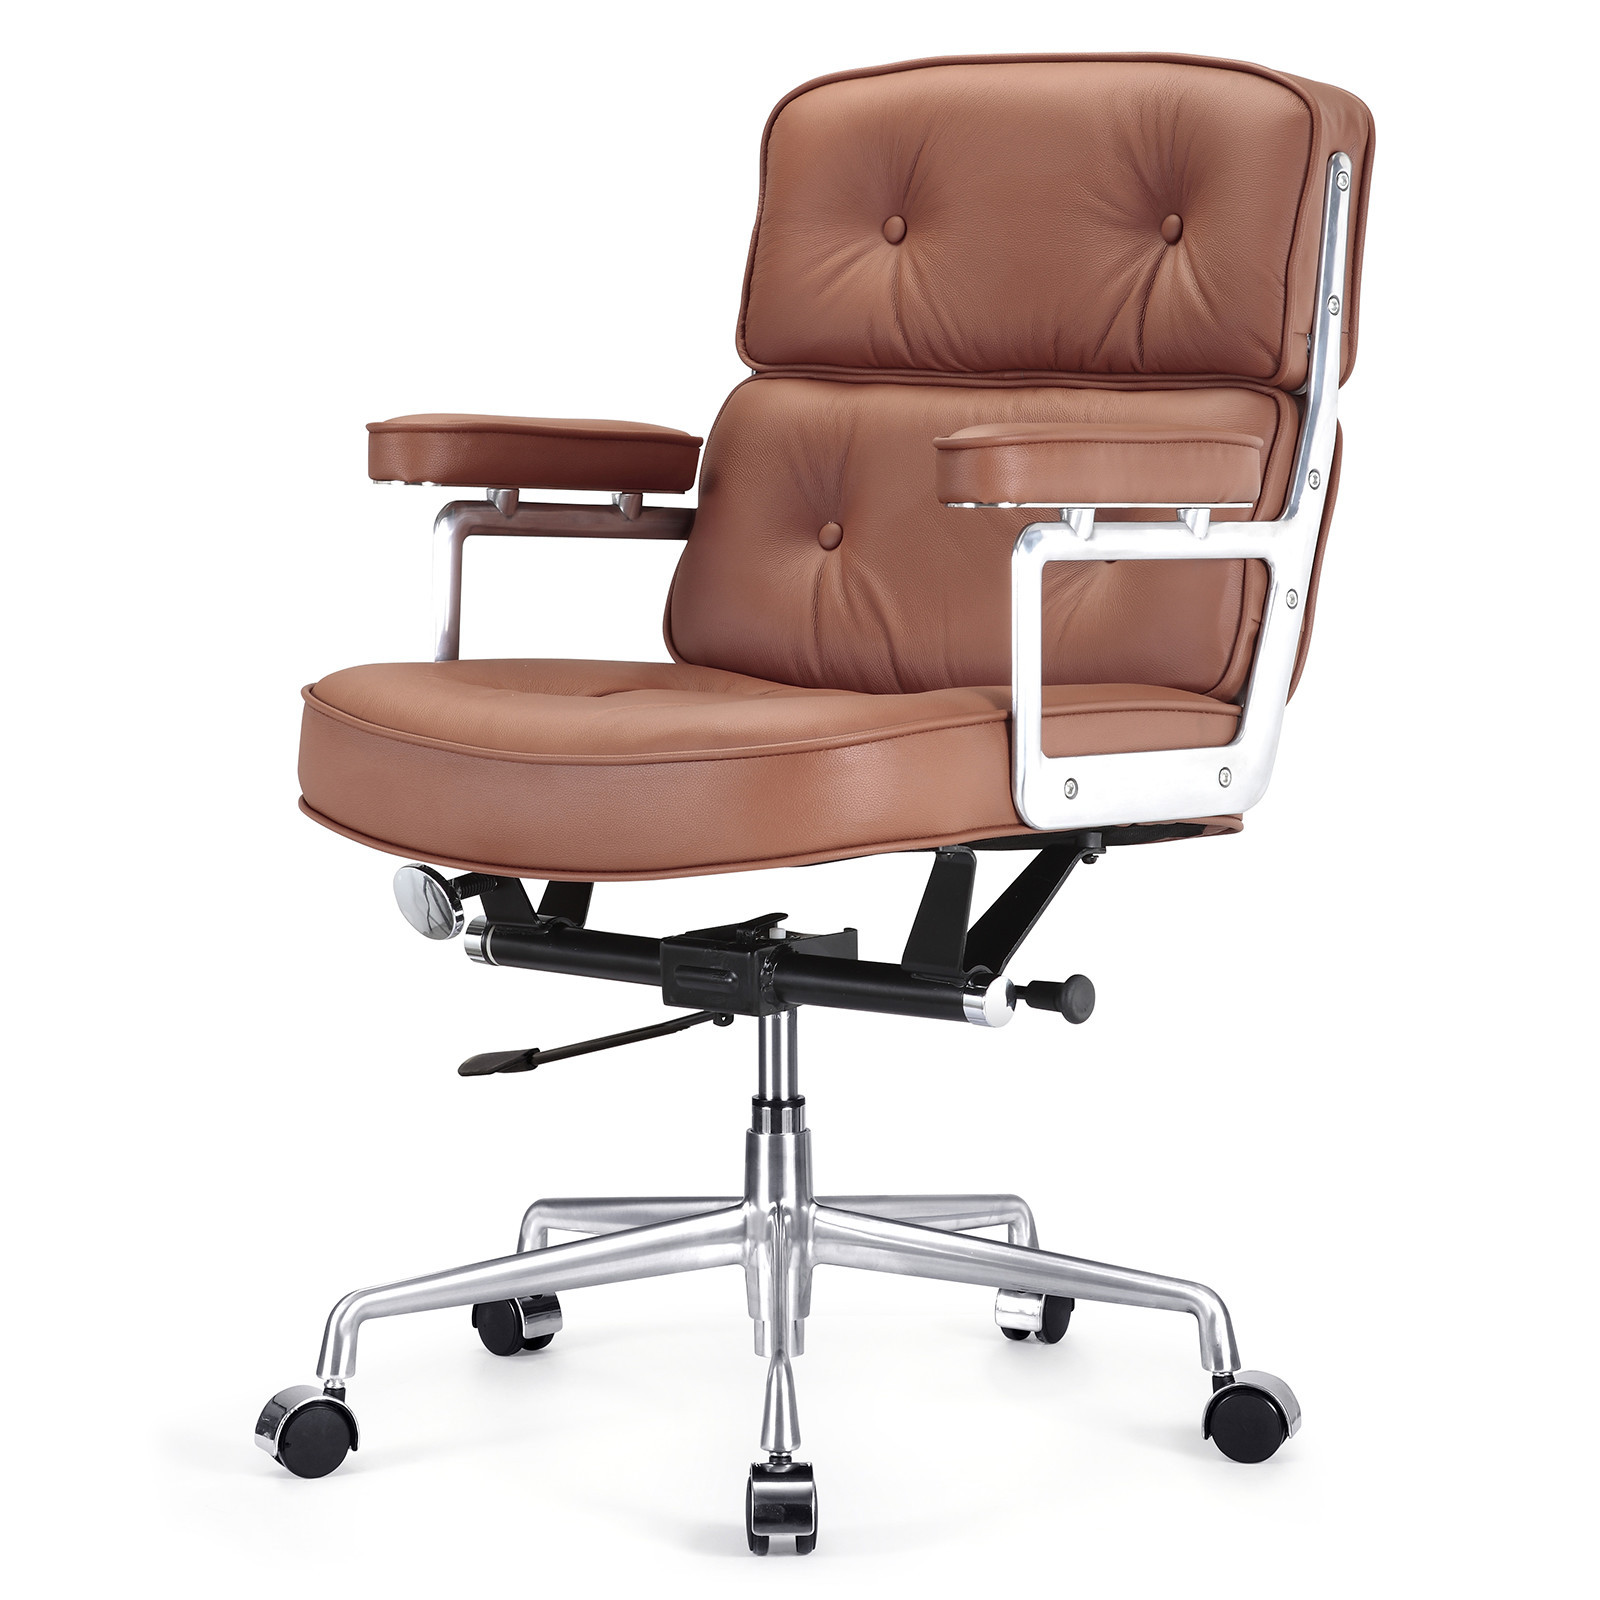 Best ideas about Leather Office Chair . Save or Pin Meelano Leather Desk Chair & Reviews Now.